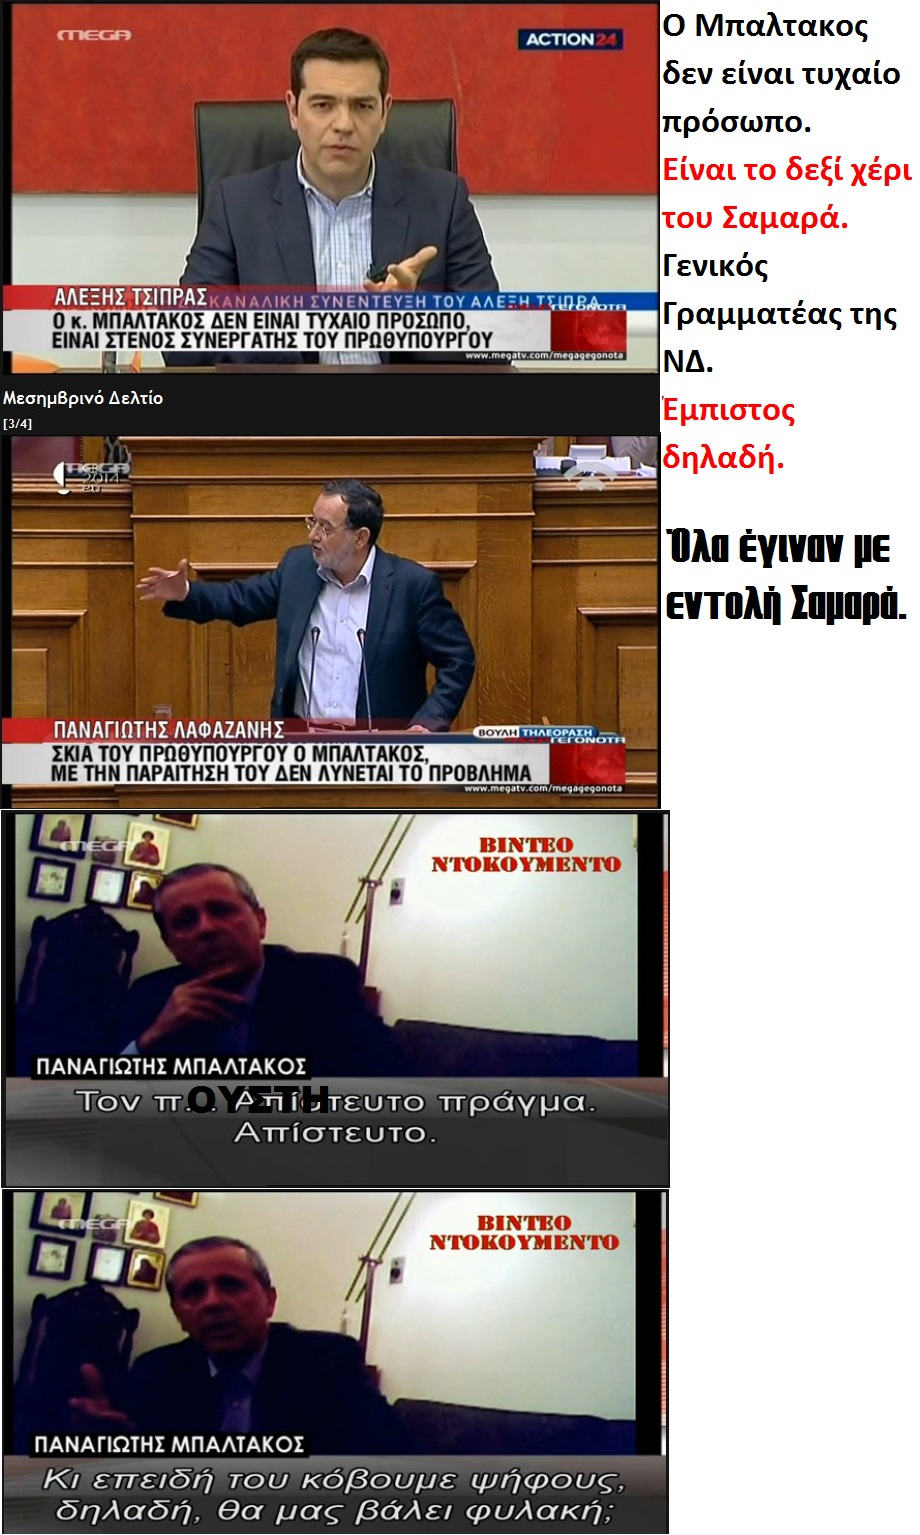 ELLADA BALTAKOS - KASIDIARHS - VIDEO - TSIPRAS 05 030414